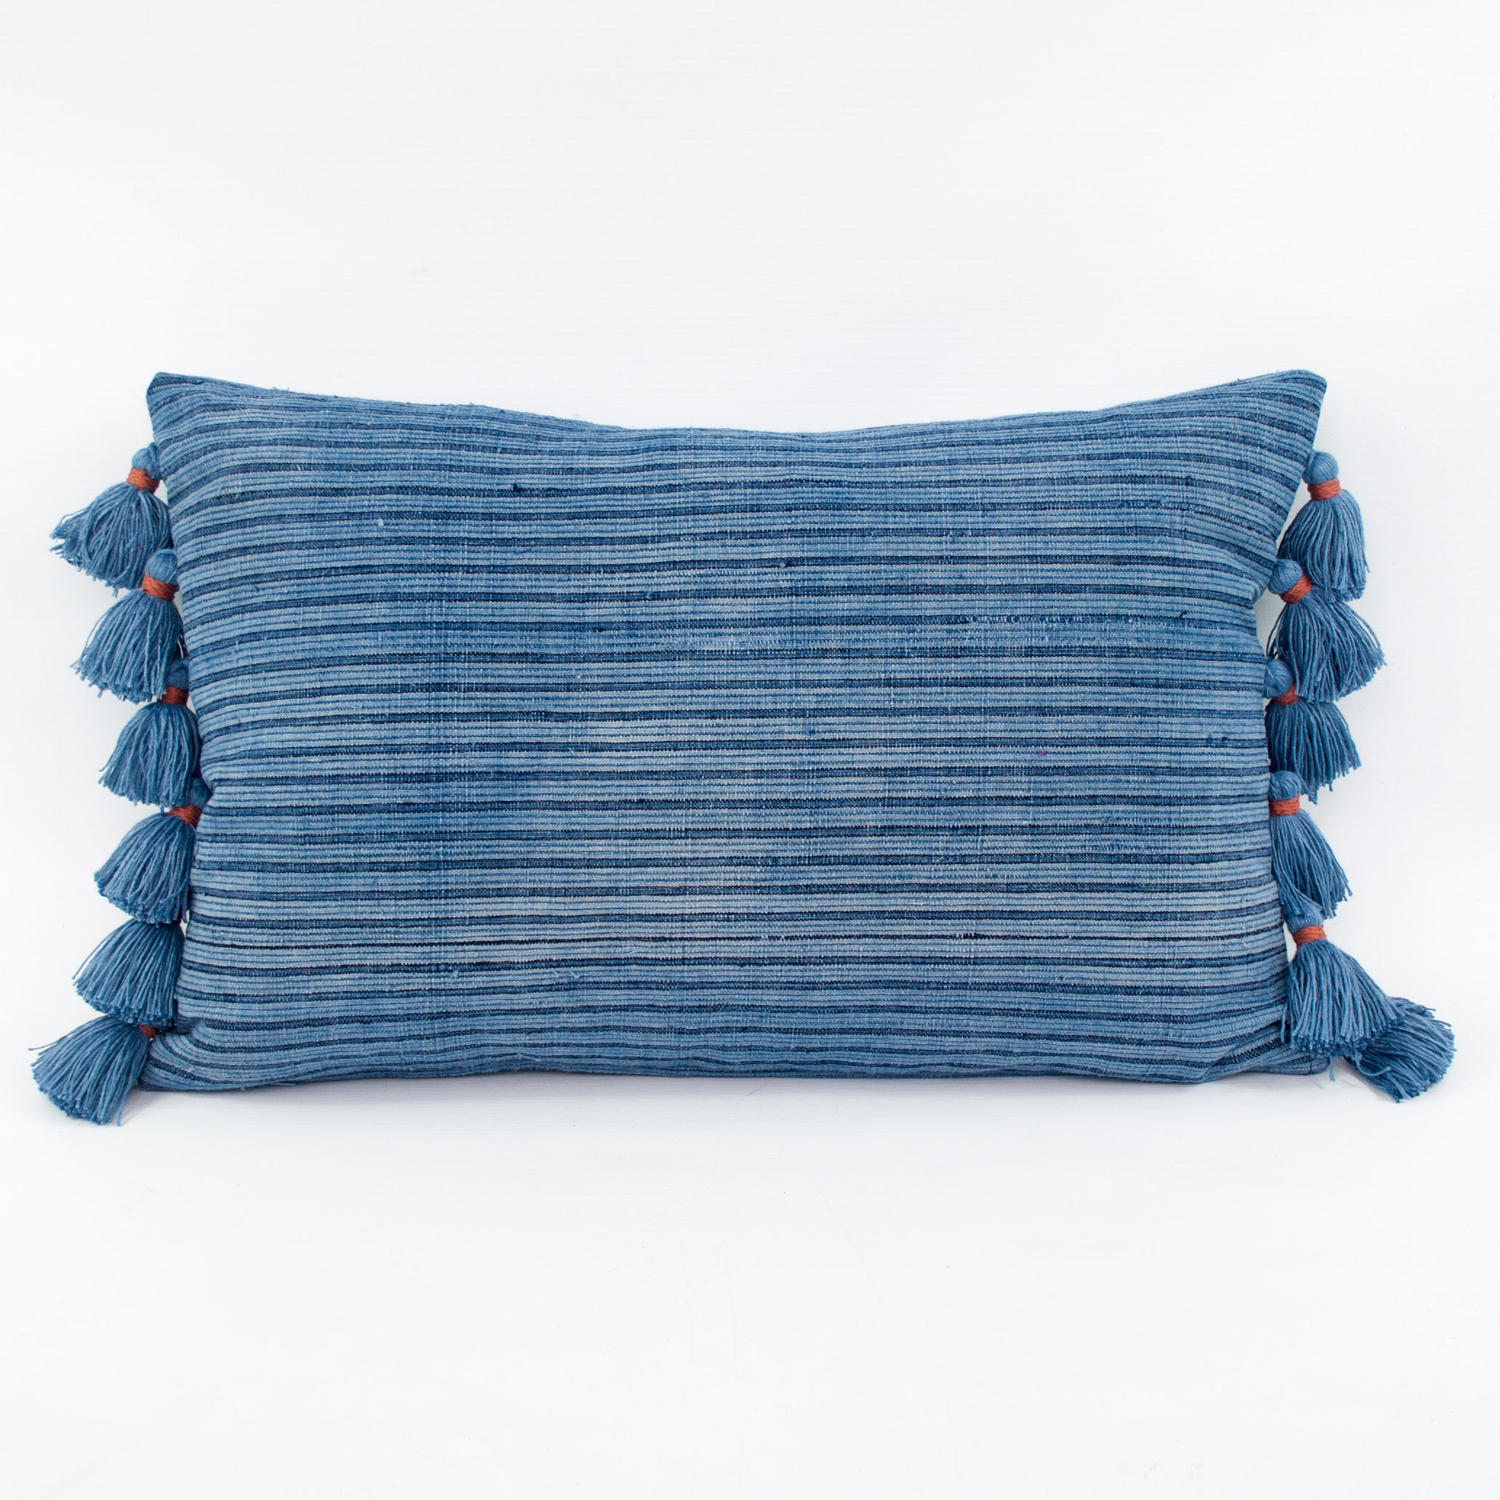 Indigo Shui Cushions with Tassels